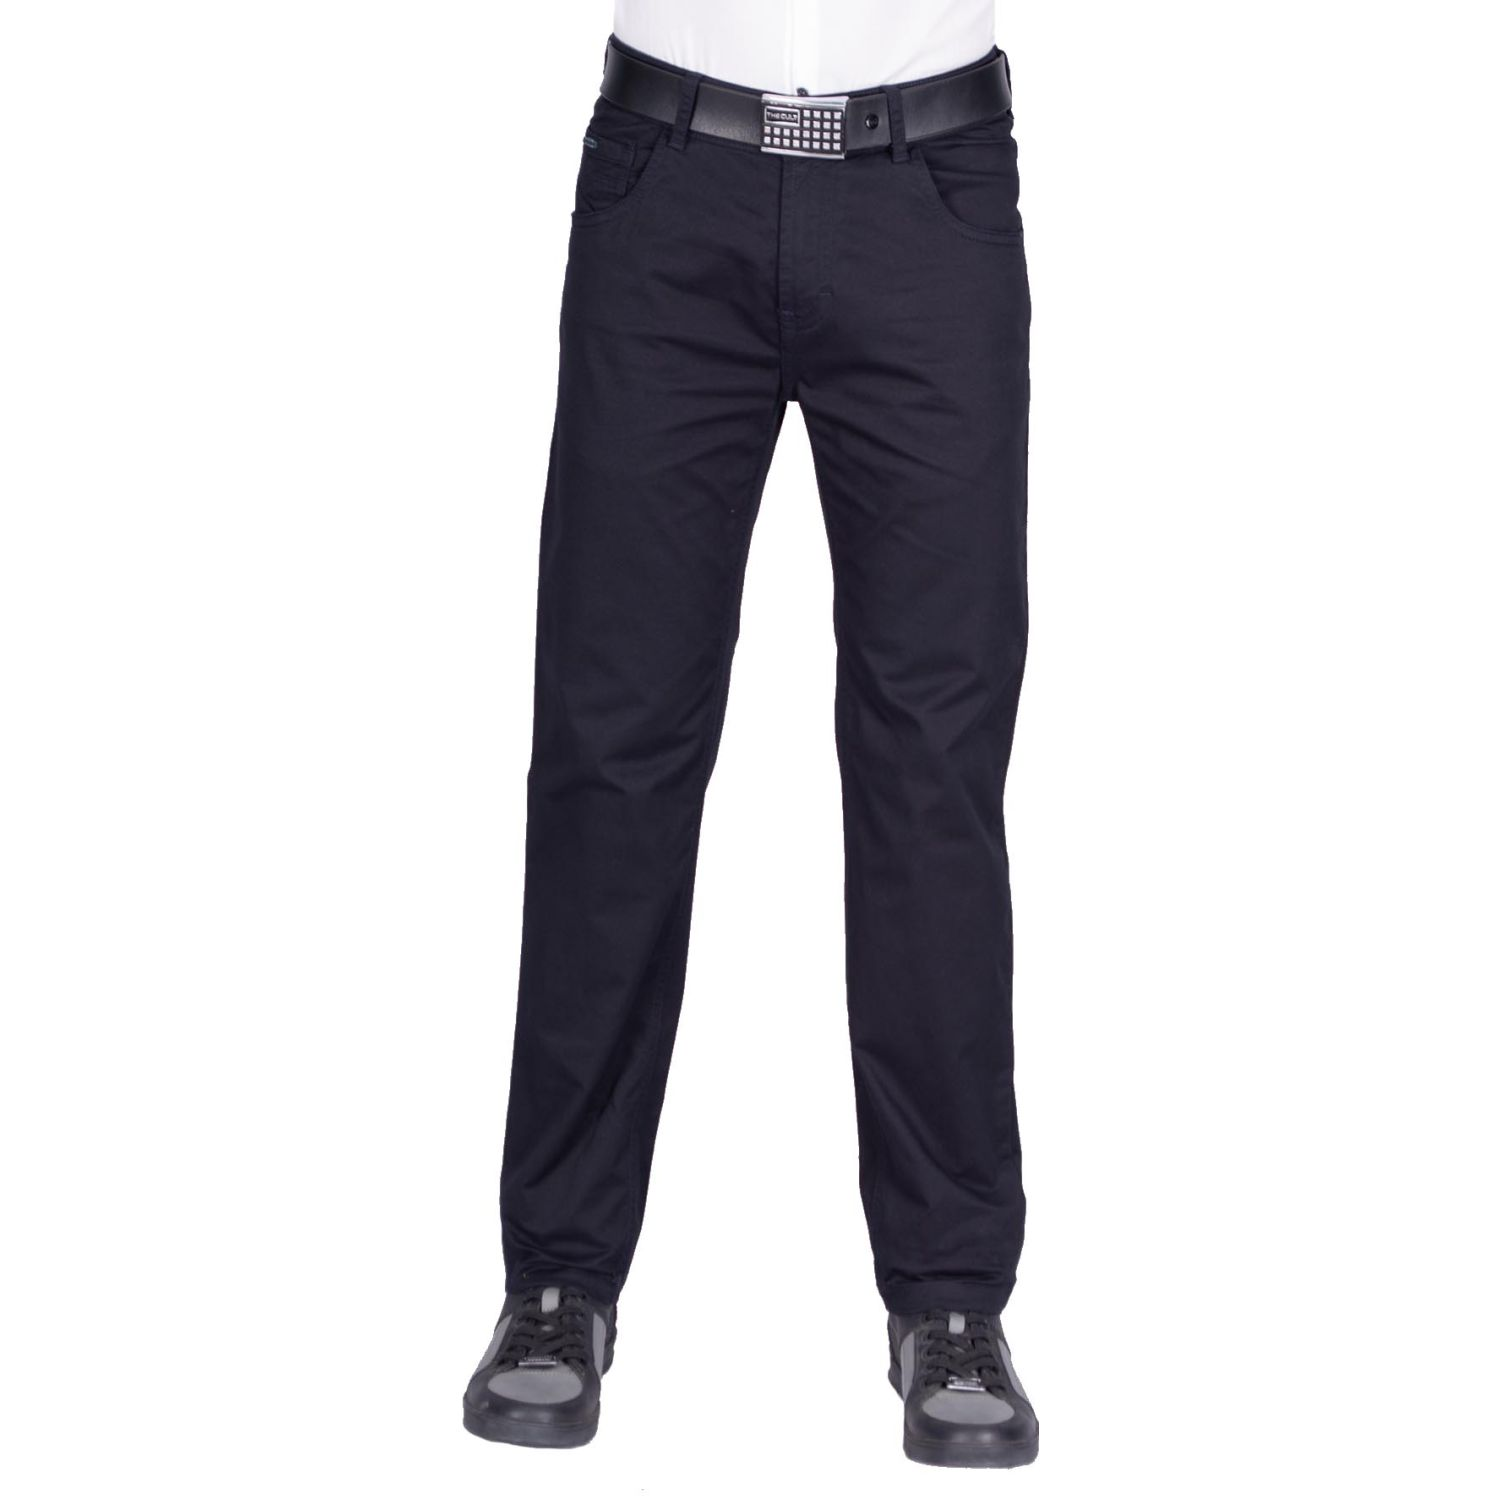 The Cult Pantalón Entubado, Drill Confort Navy Casual